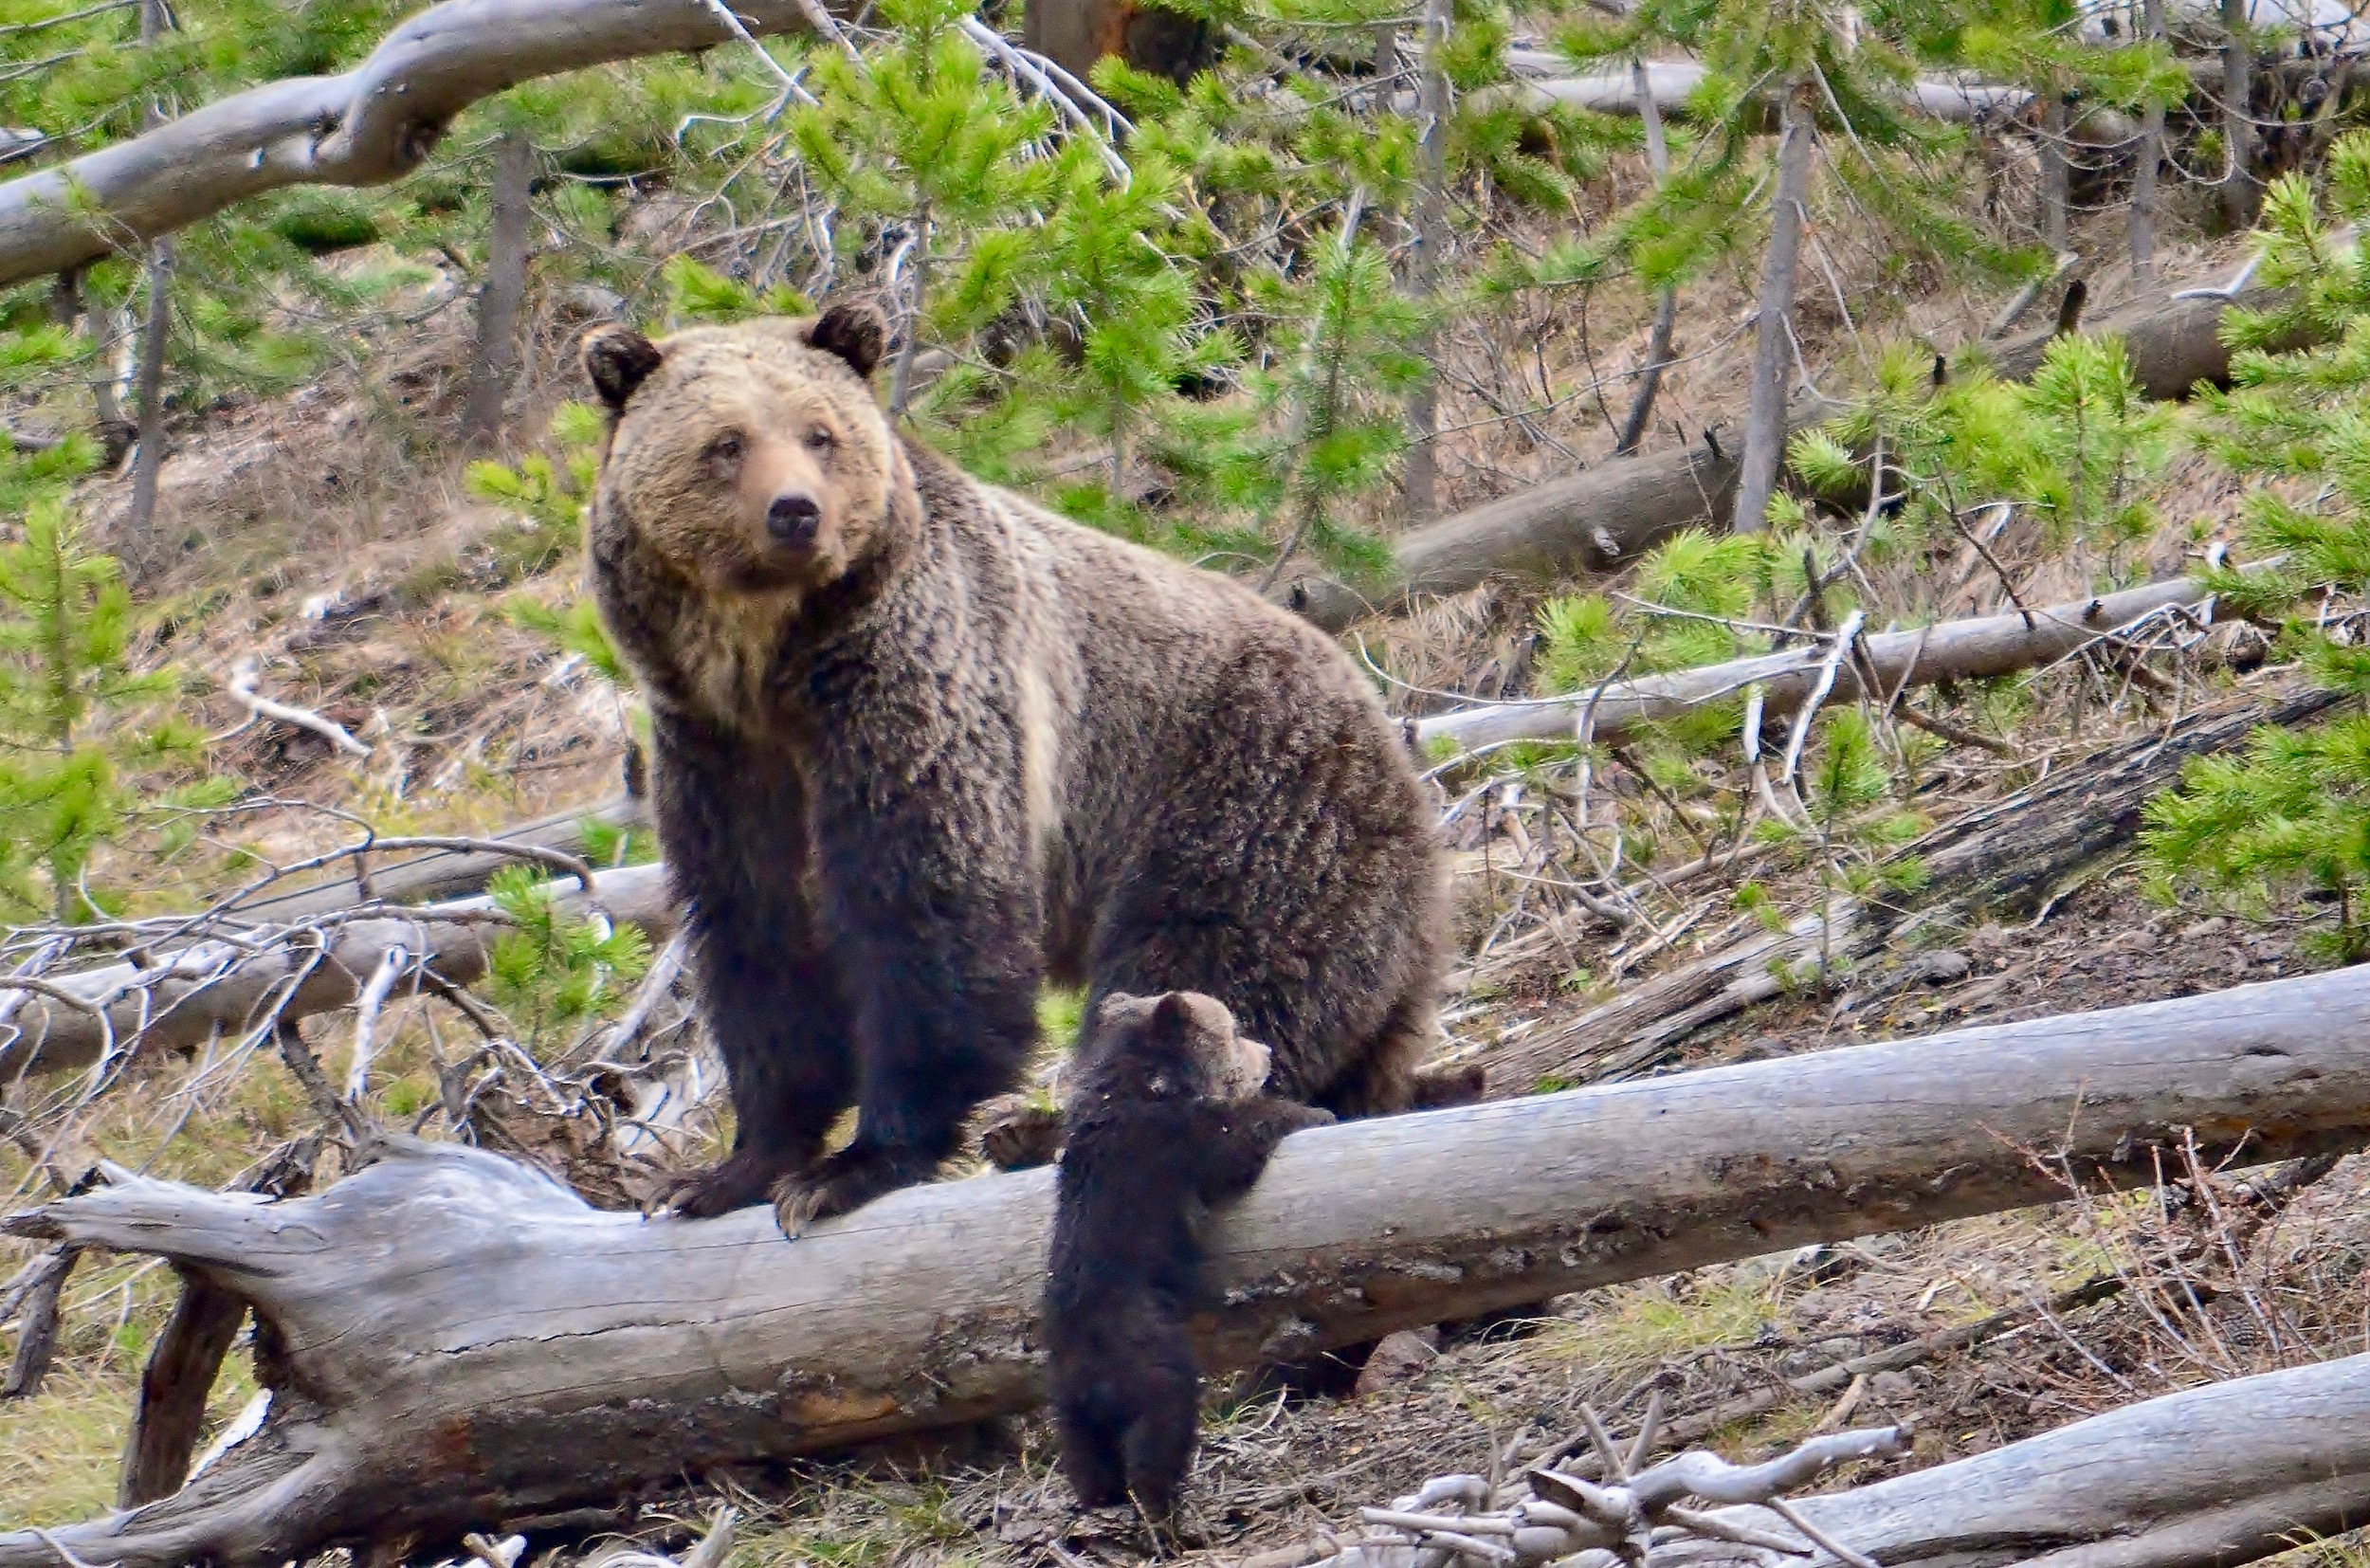 Tribes win decision blocking grizzly bear hunts near Yellowstone